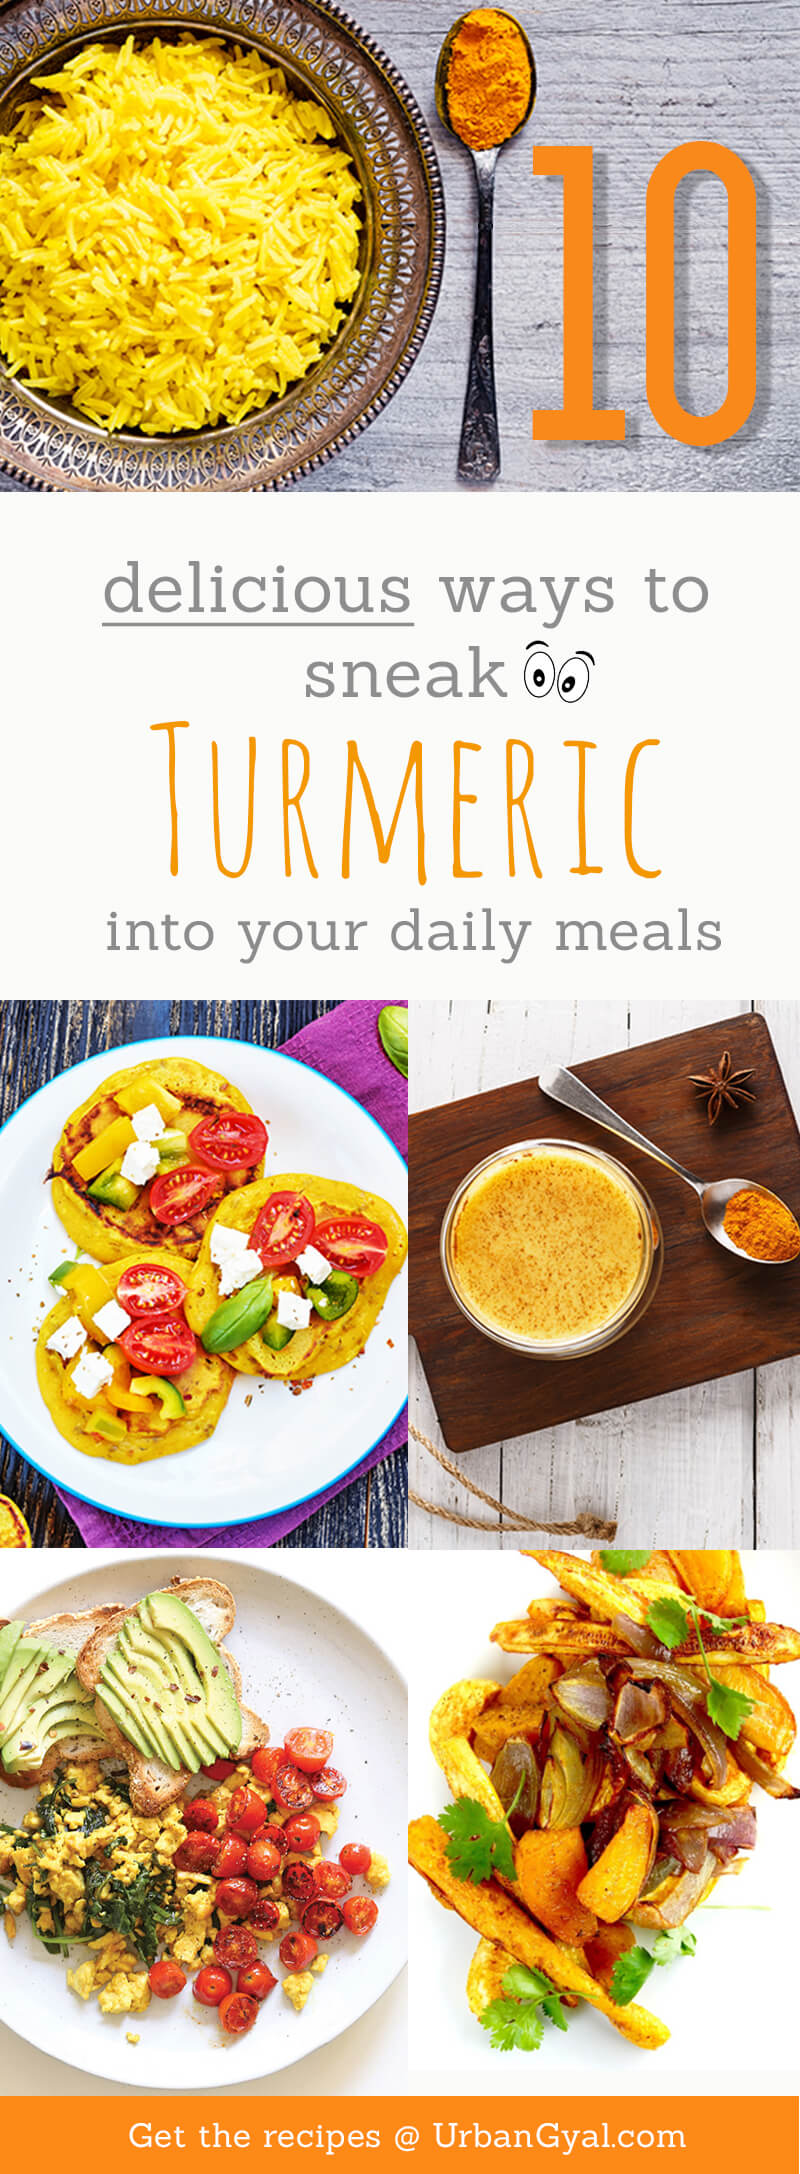 10 Turmeric Recipes